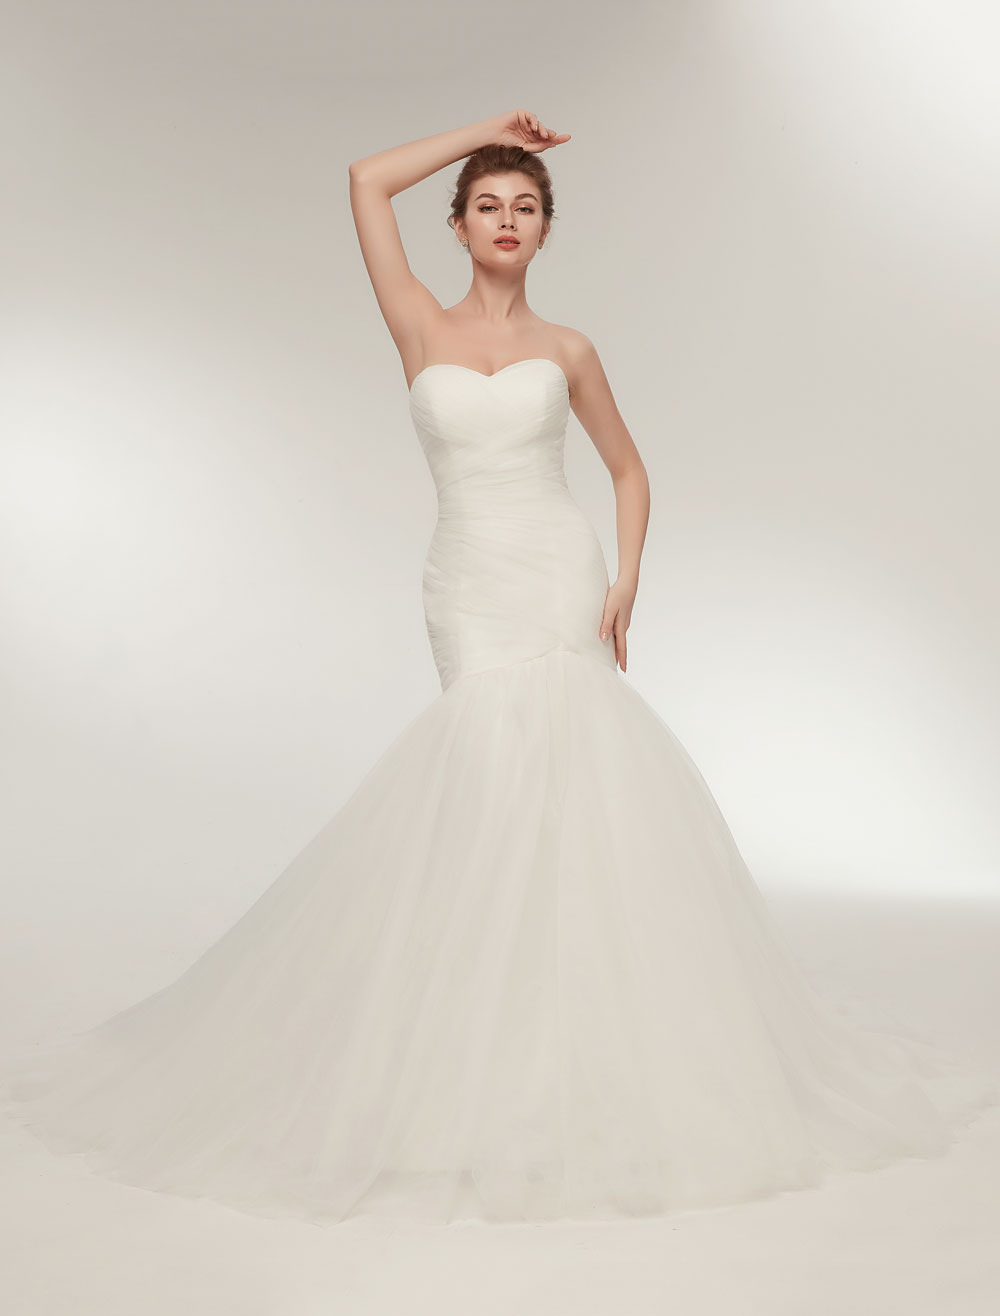 Mermaid Wedding Dresses Strapless Ivory Trumpet Bridal Dress Sweetheart Neckline Tulle Pleated Wedding Gowns With Train